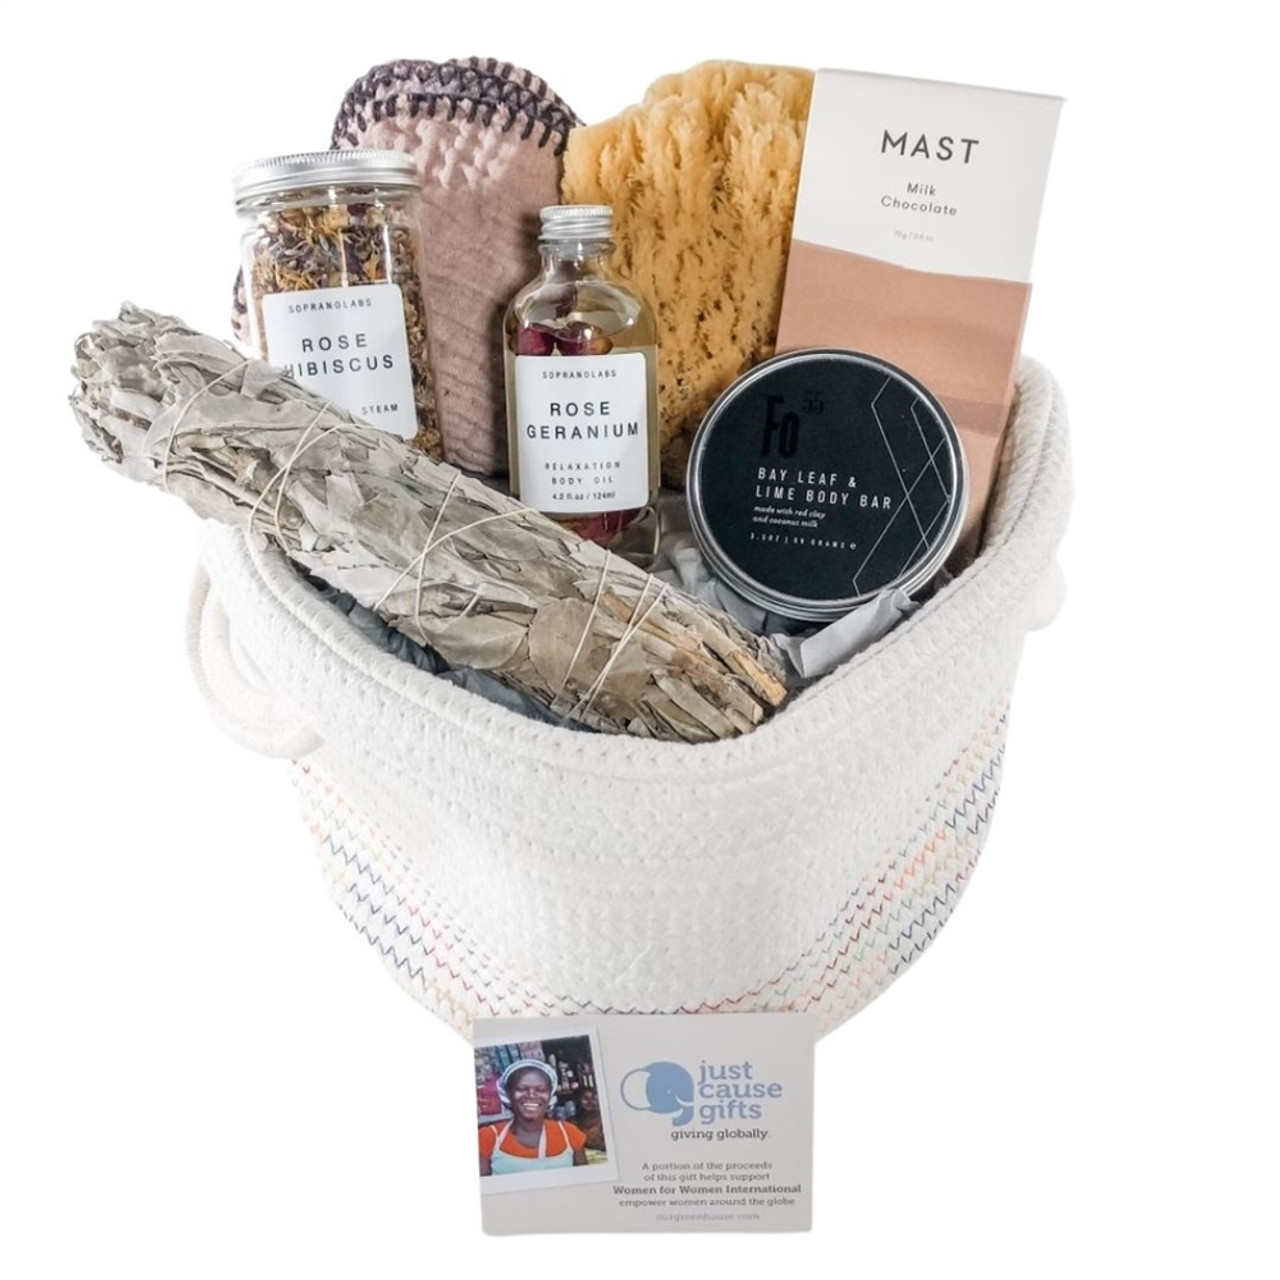 Uplifting Gift Basket for Her - Rosy Outlook